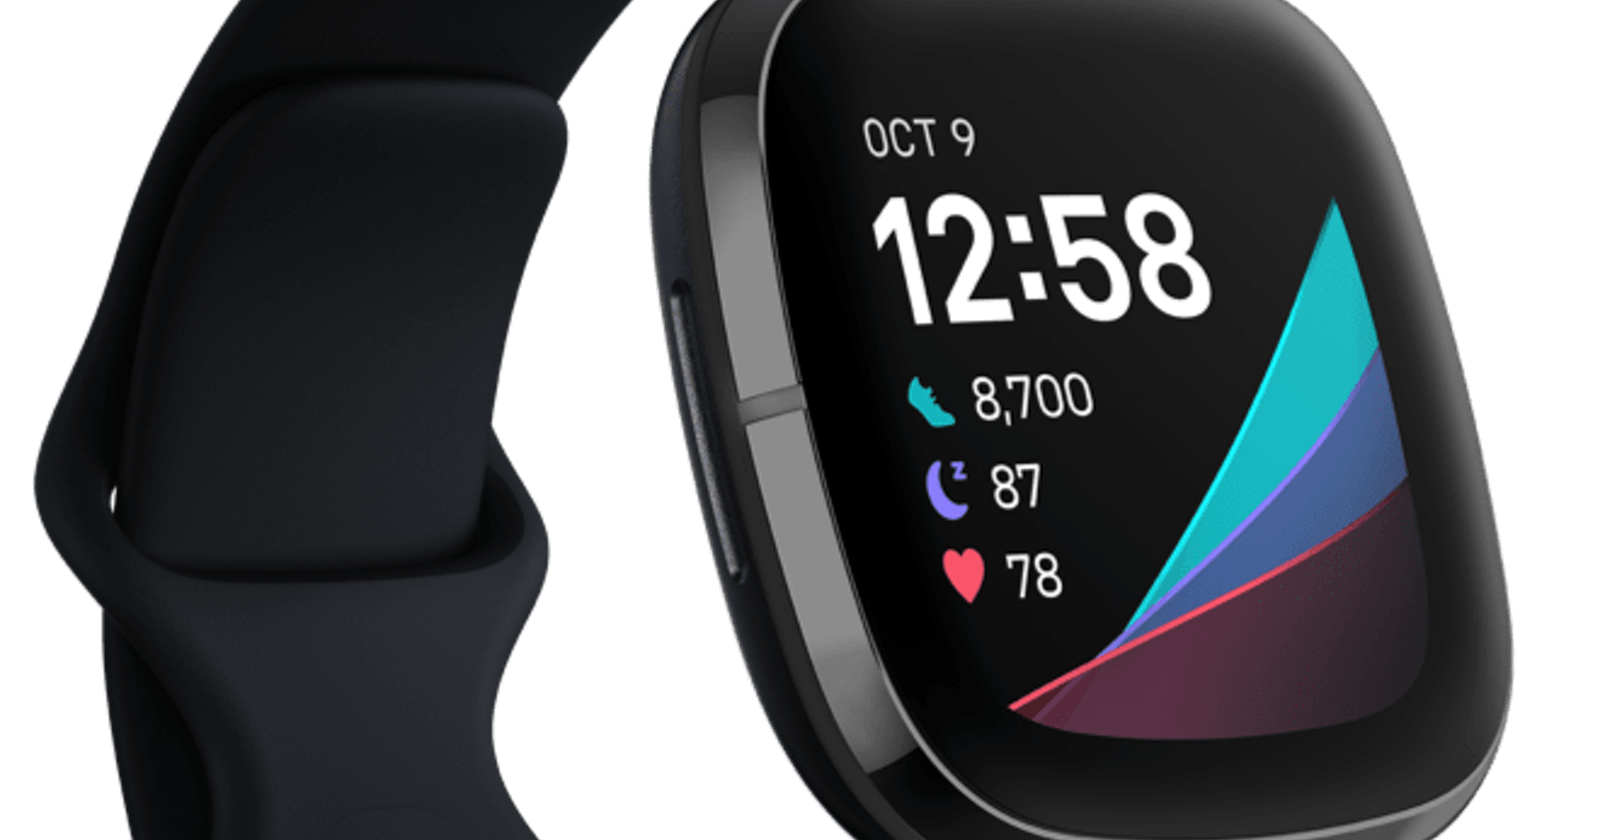 Getting started with Fitbit development - Part II: Creating a Clock Face, Fitbit OS Simulator, running the app on an actual device